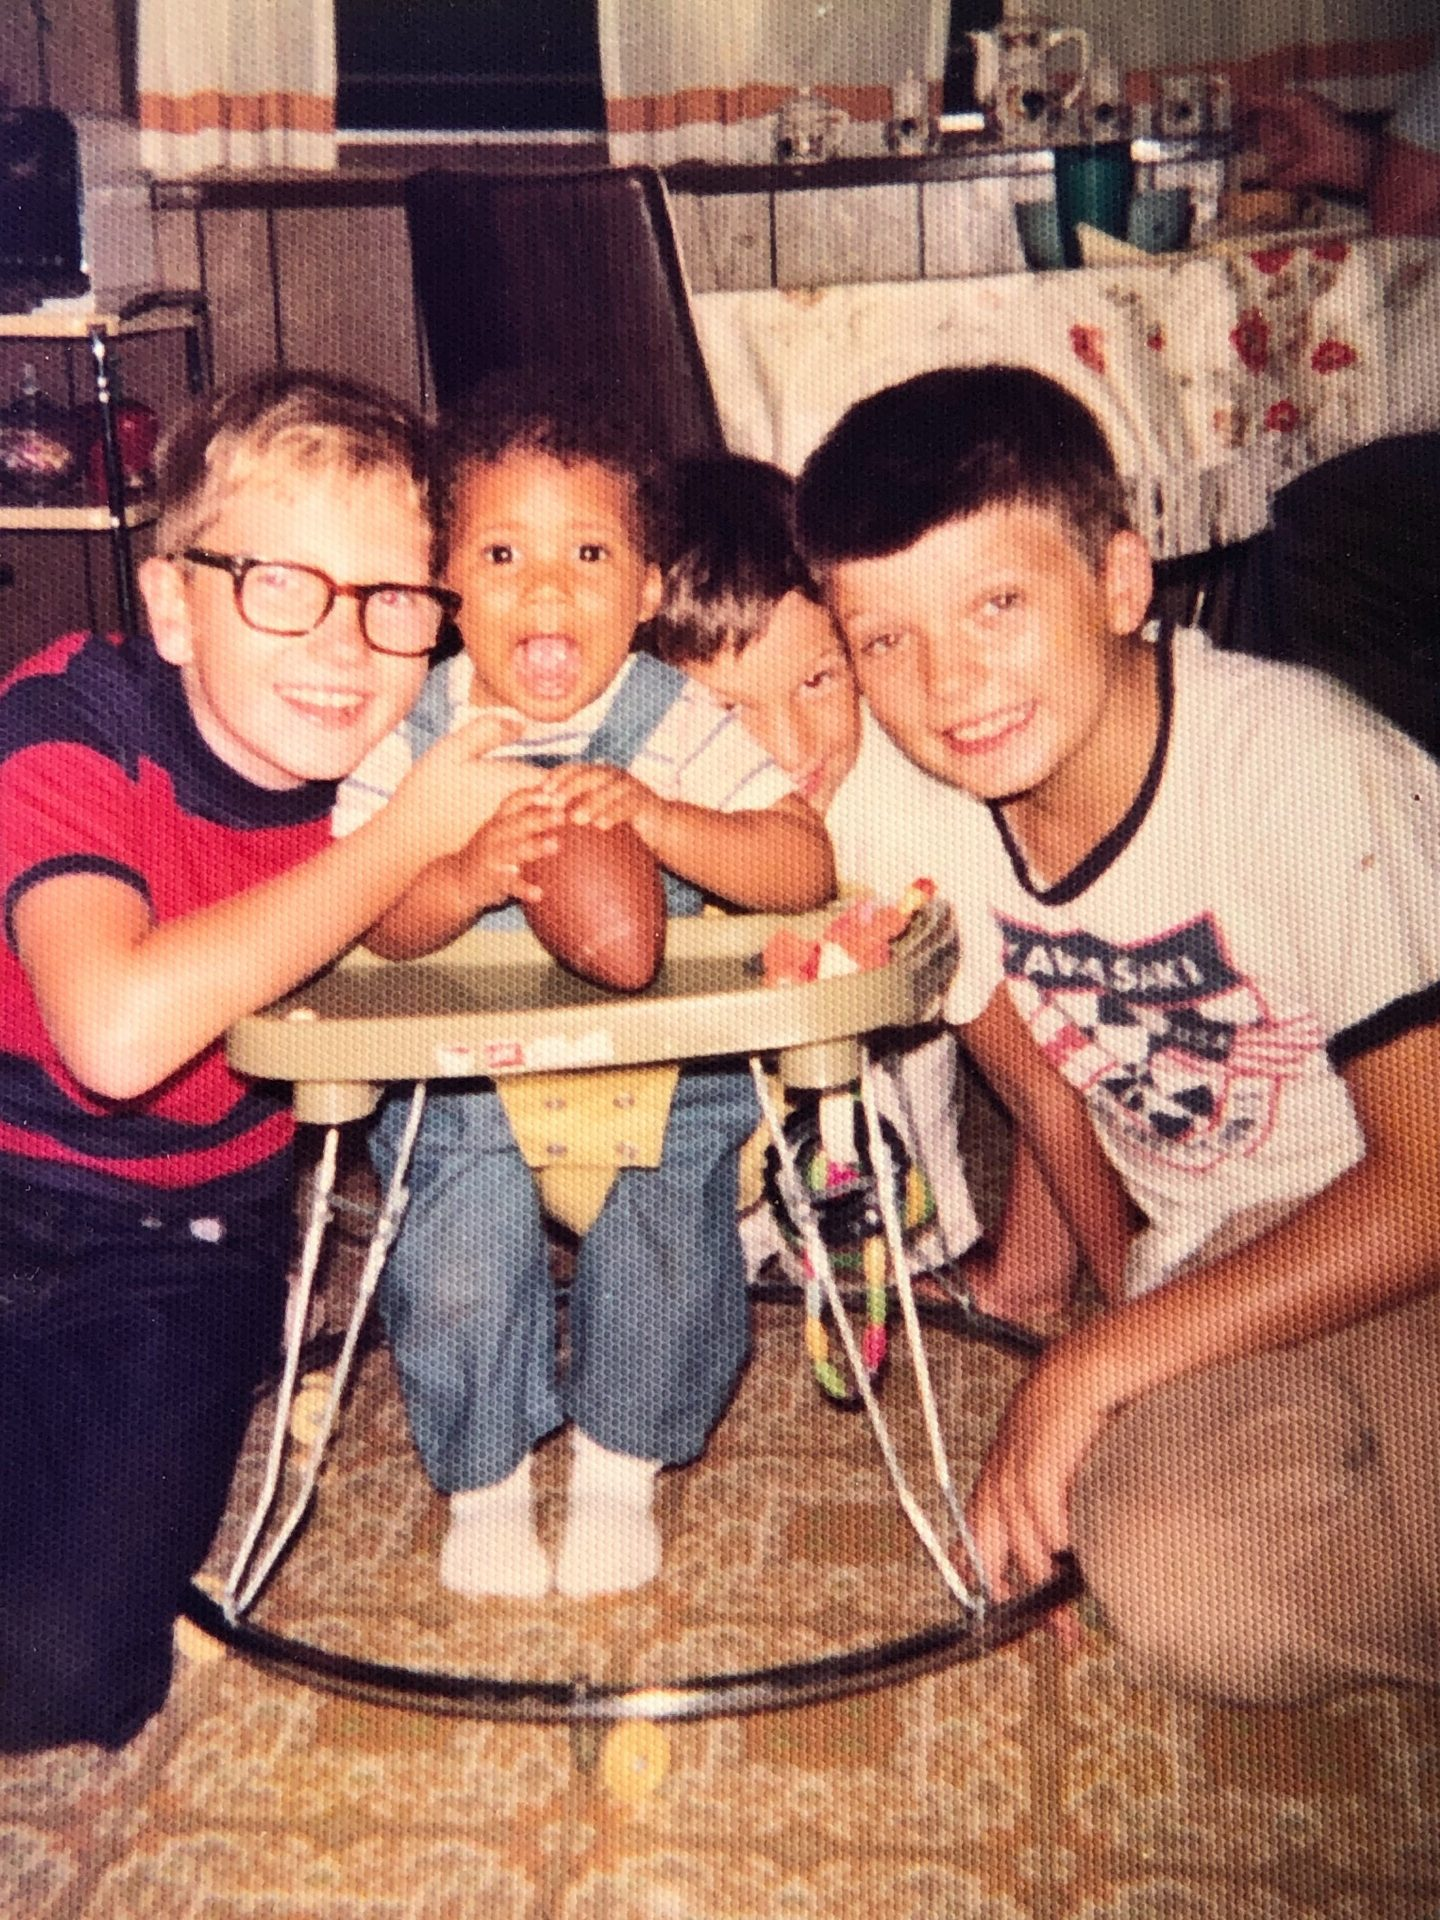 Andy (left) and Stosh as kids with their cousin Patrick Tobin and older brother Leo.